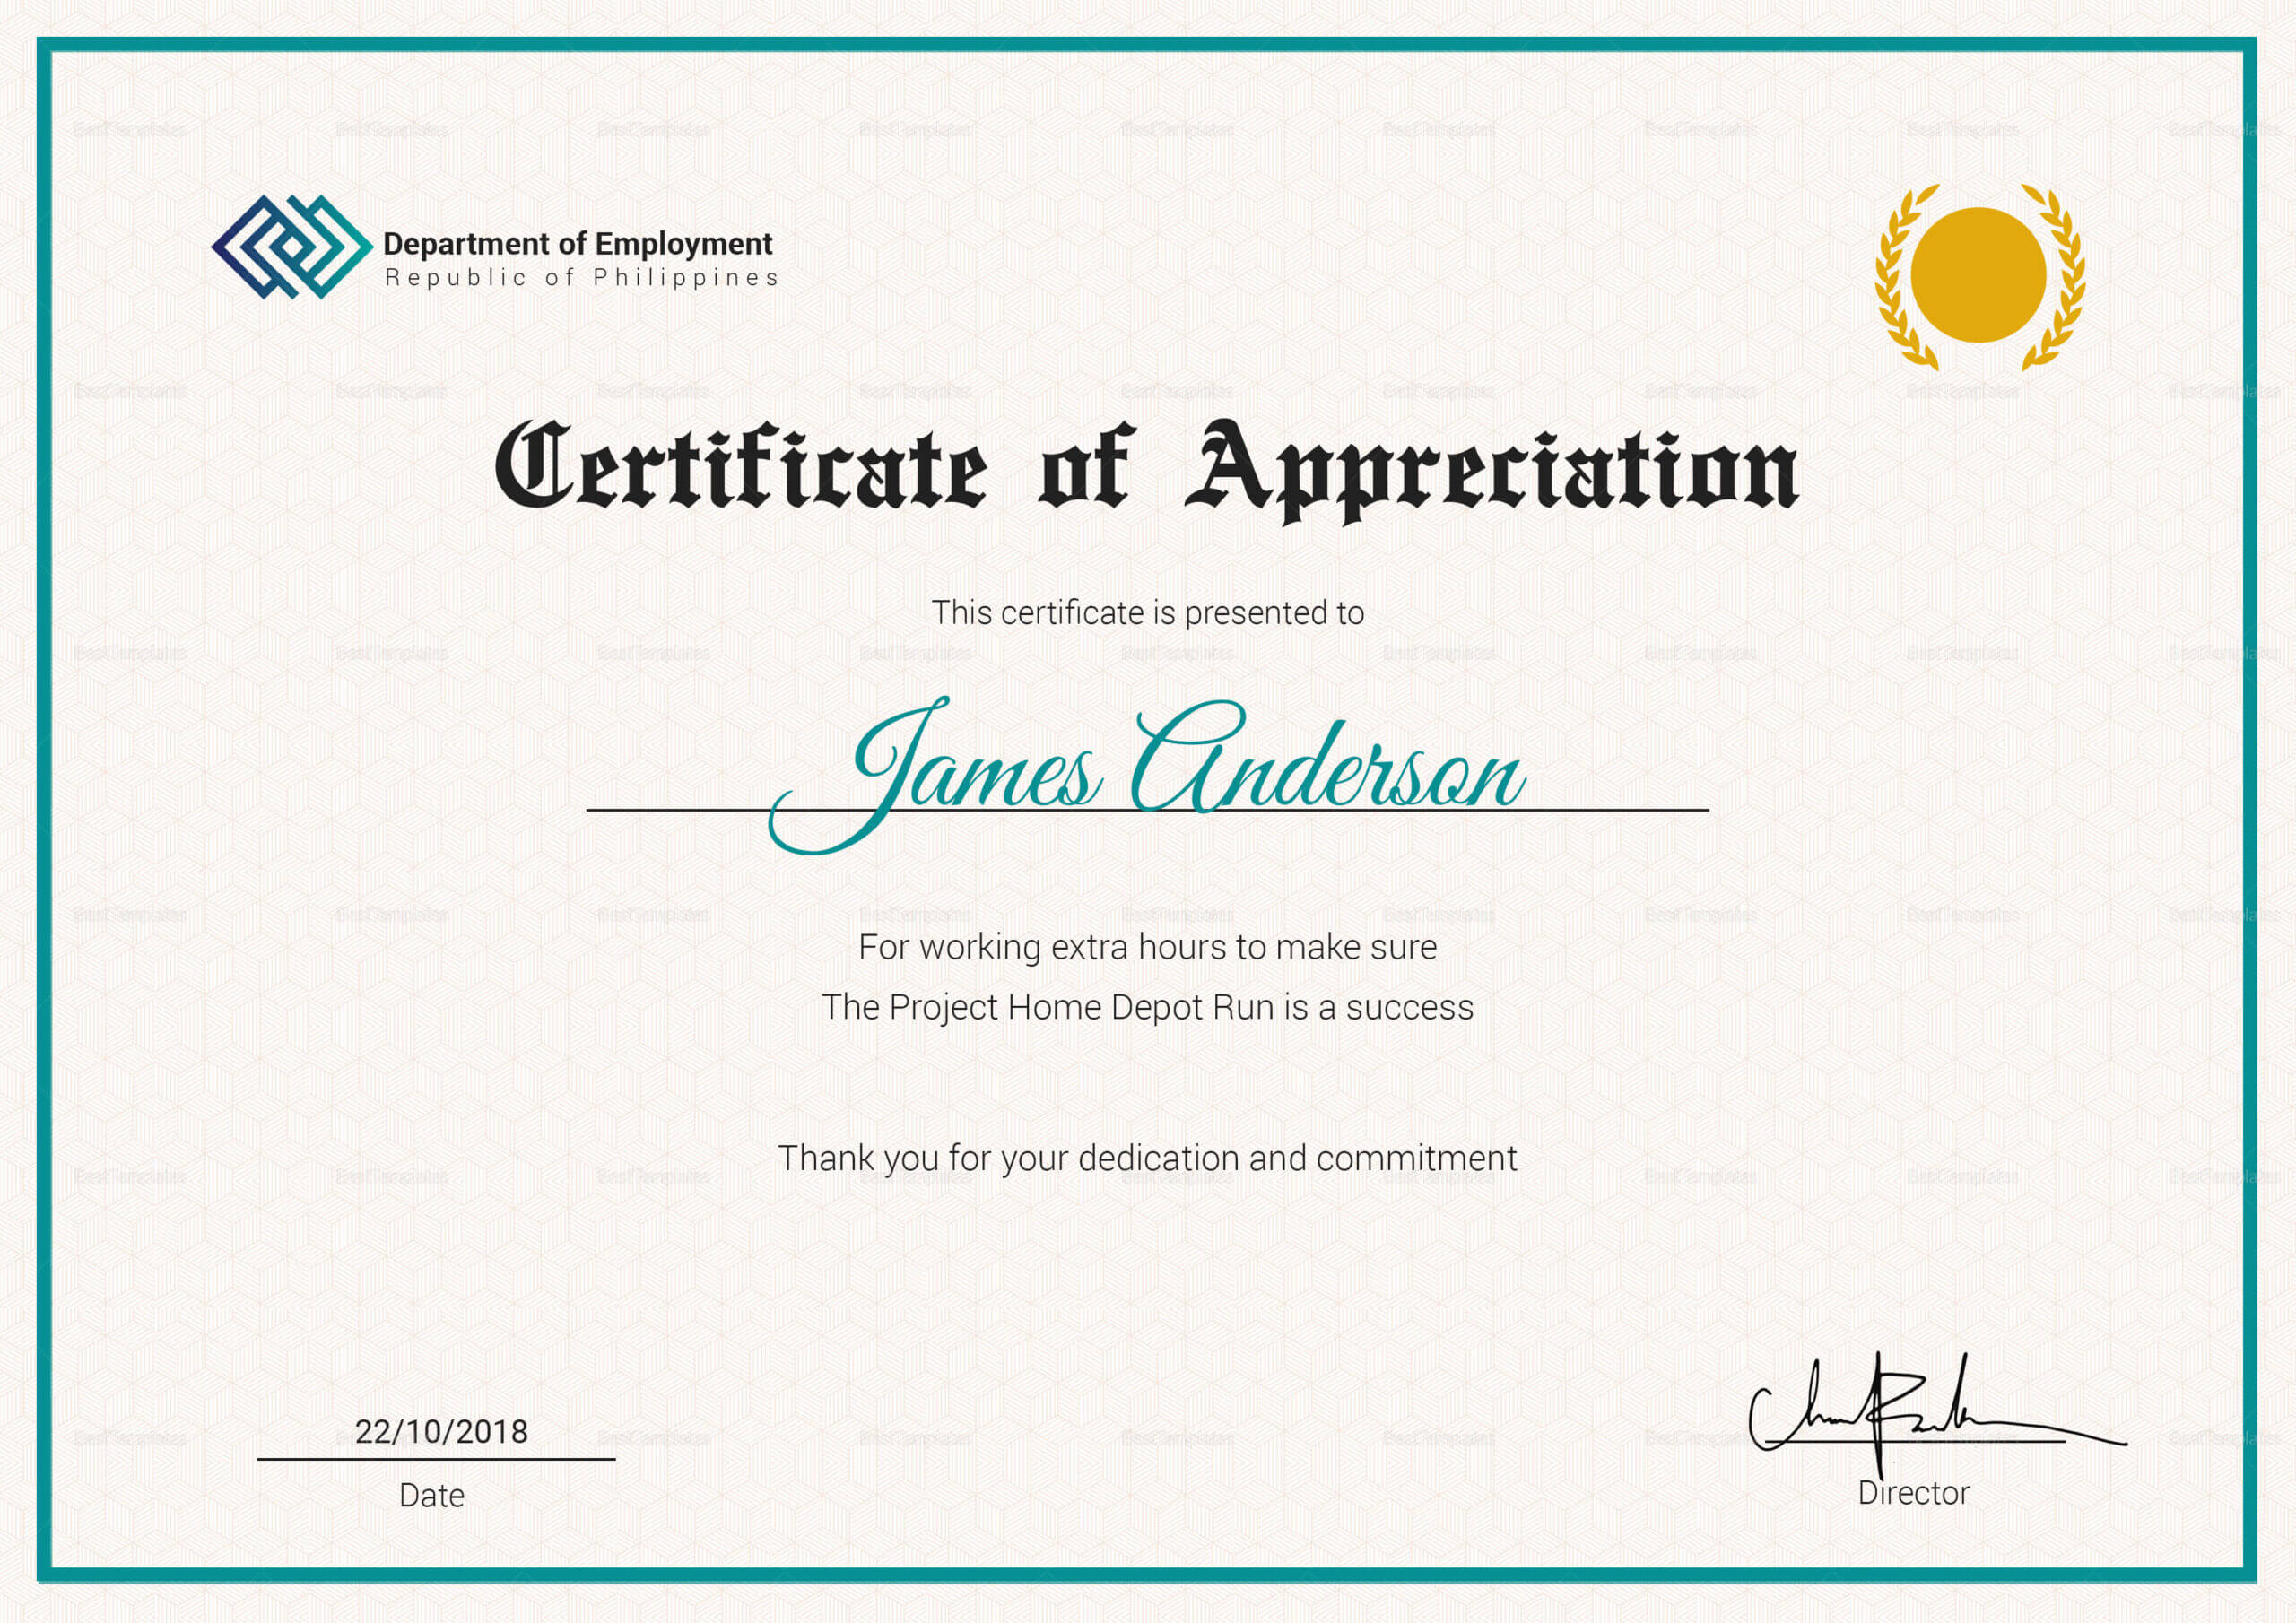 Certificate Of Service Template - Calep.midnightpig.co Pertaining To Certificate For Years Of Service Template